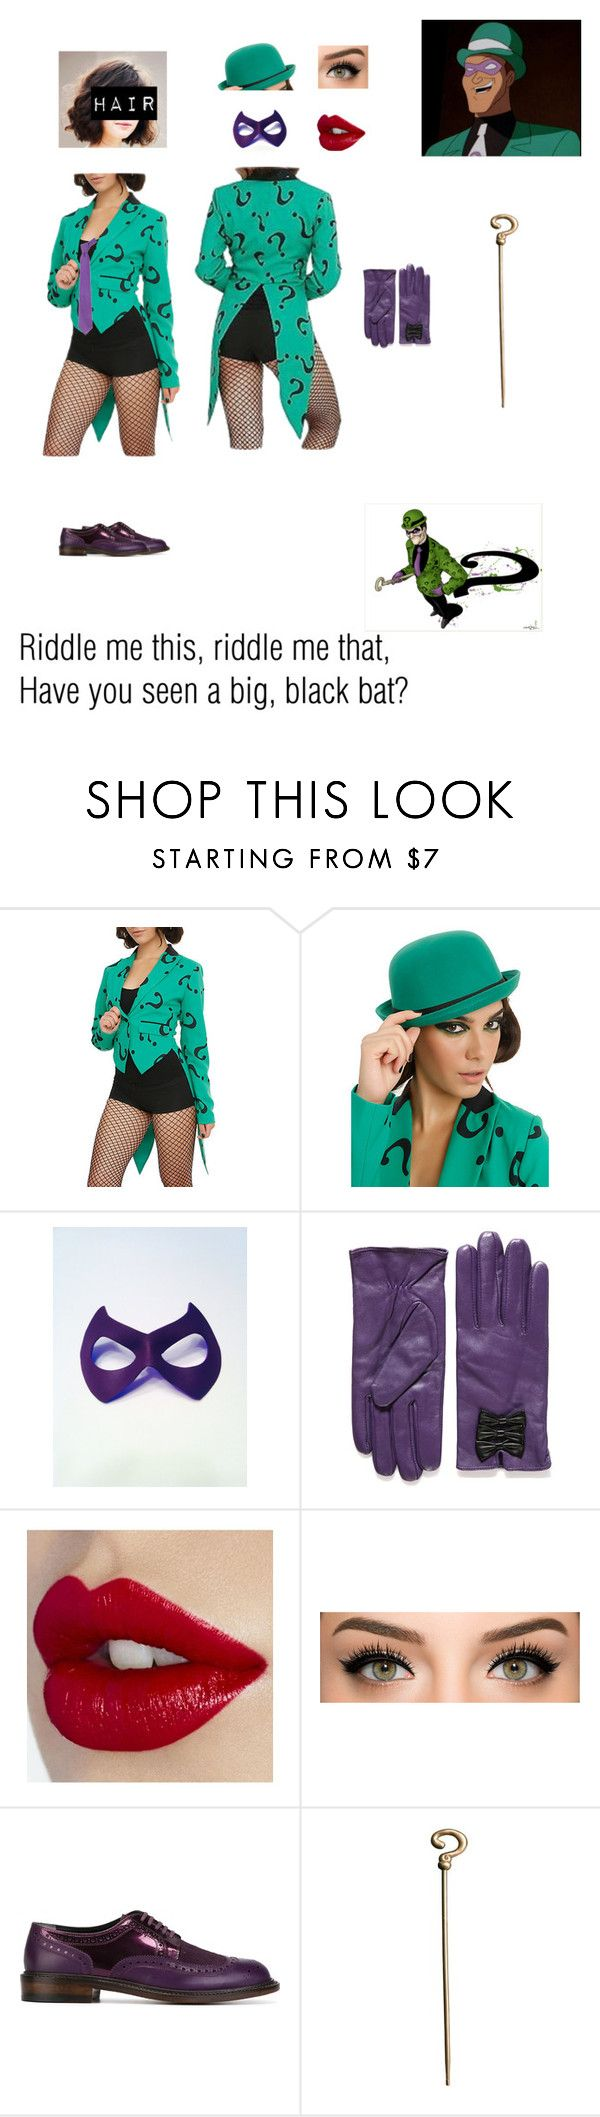 """Girl Version of the Riddler"" by nerdbucket ❤ liked on Polyvore featuring Robert Clergerie, Forzieri, women's clothing, women, female, woman, misses and juniors"